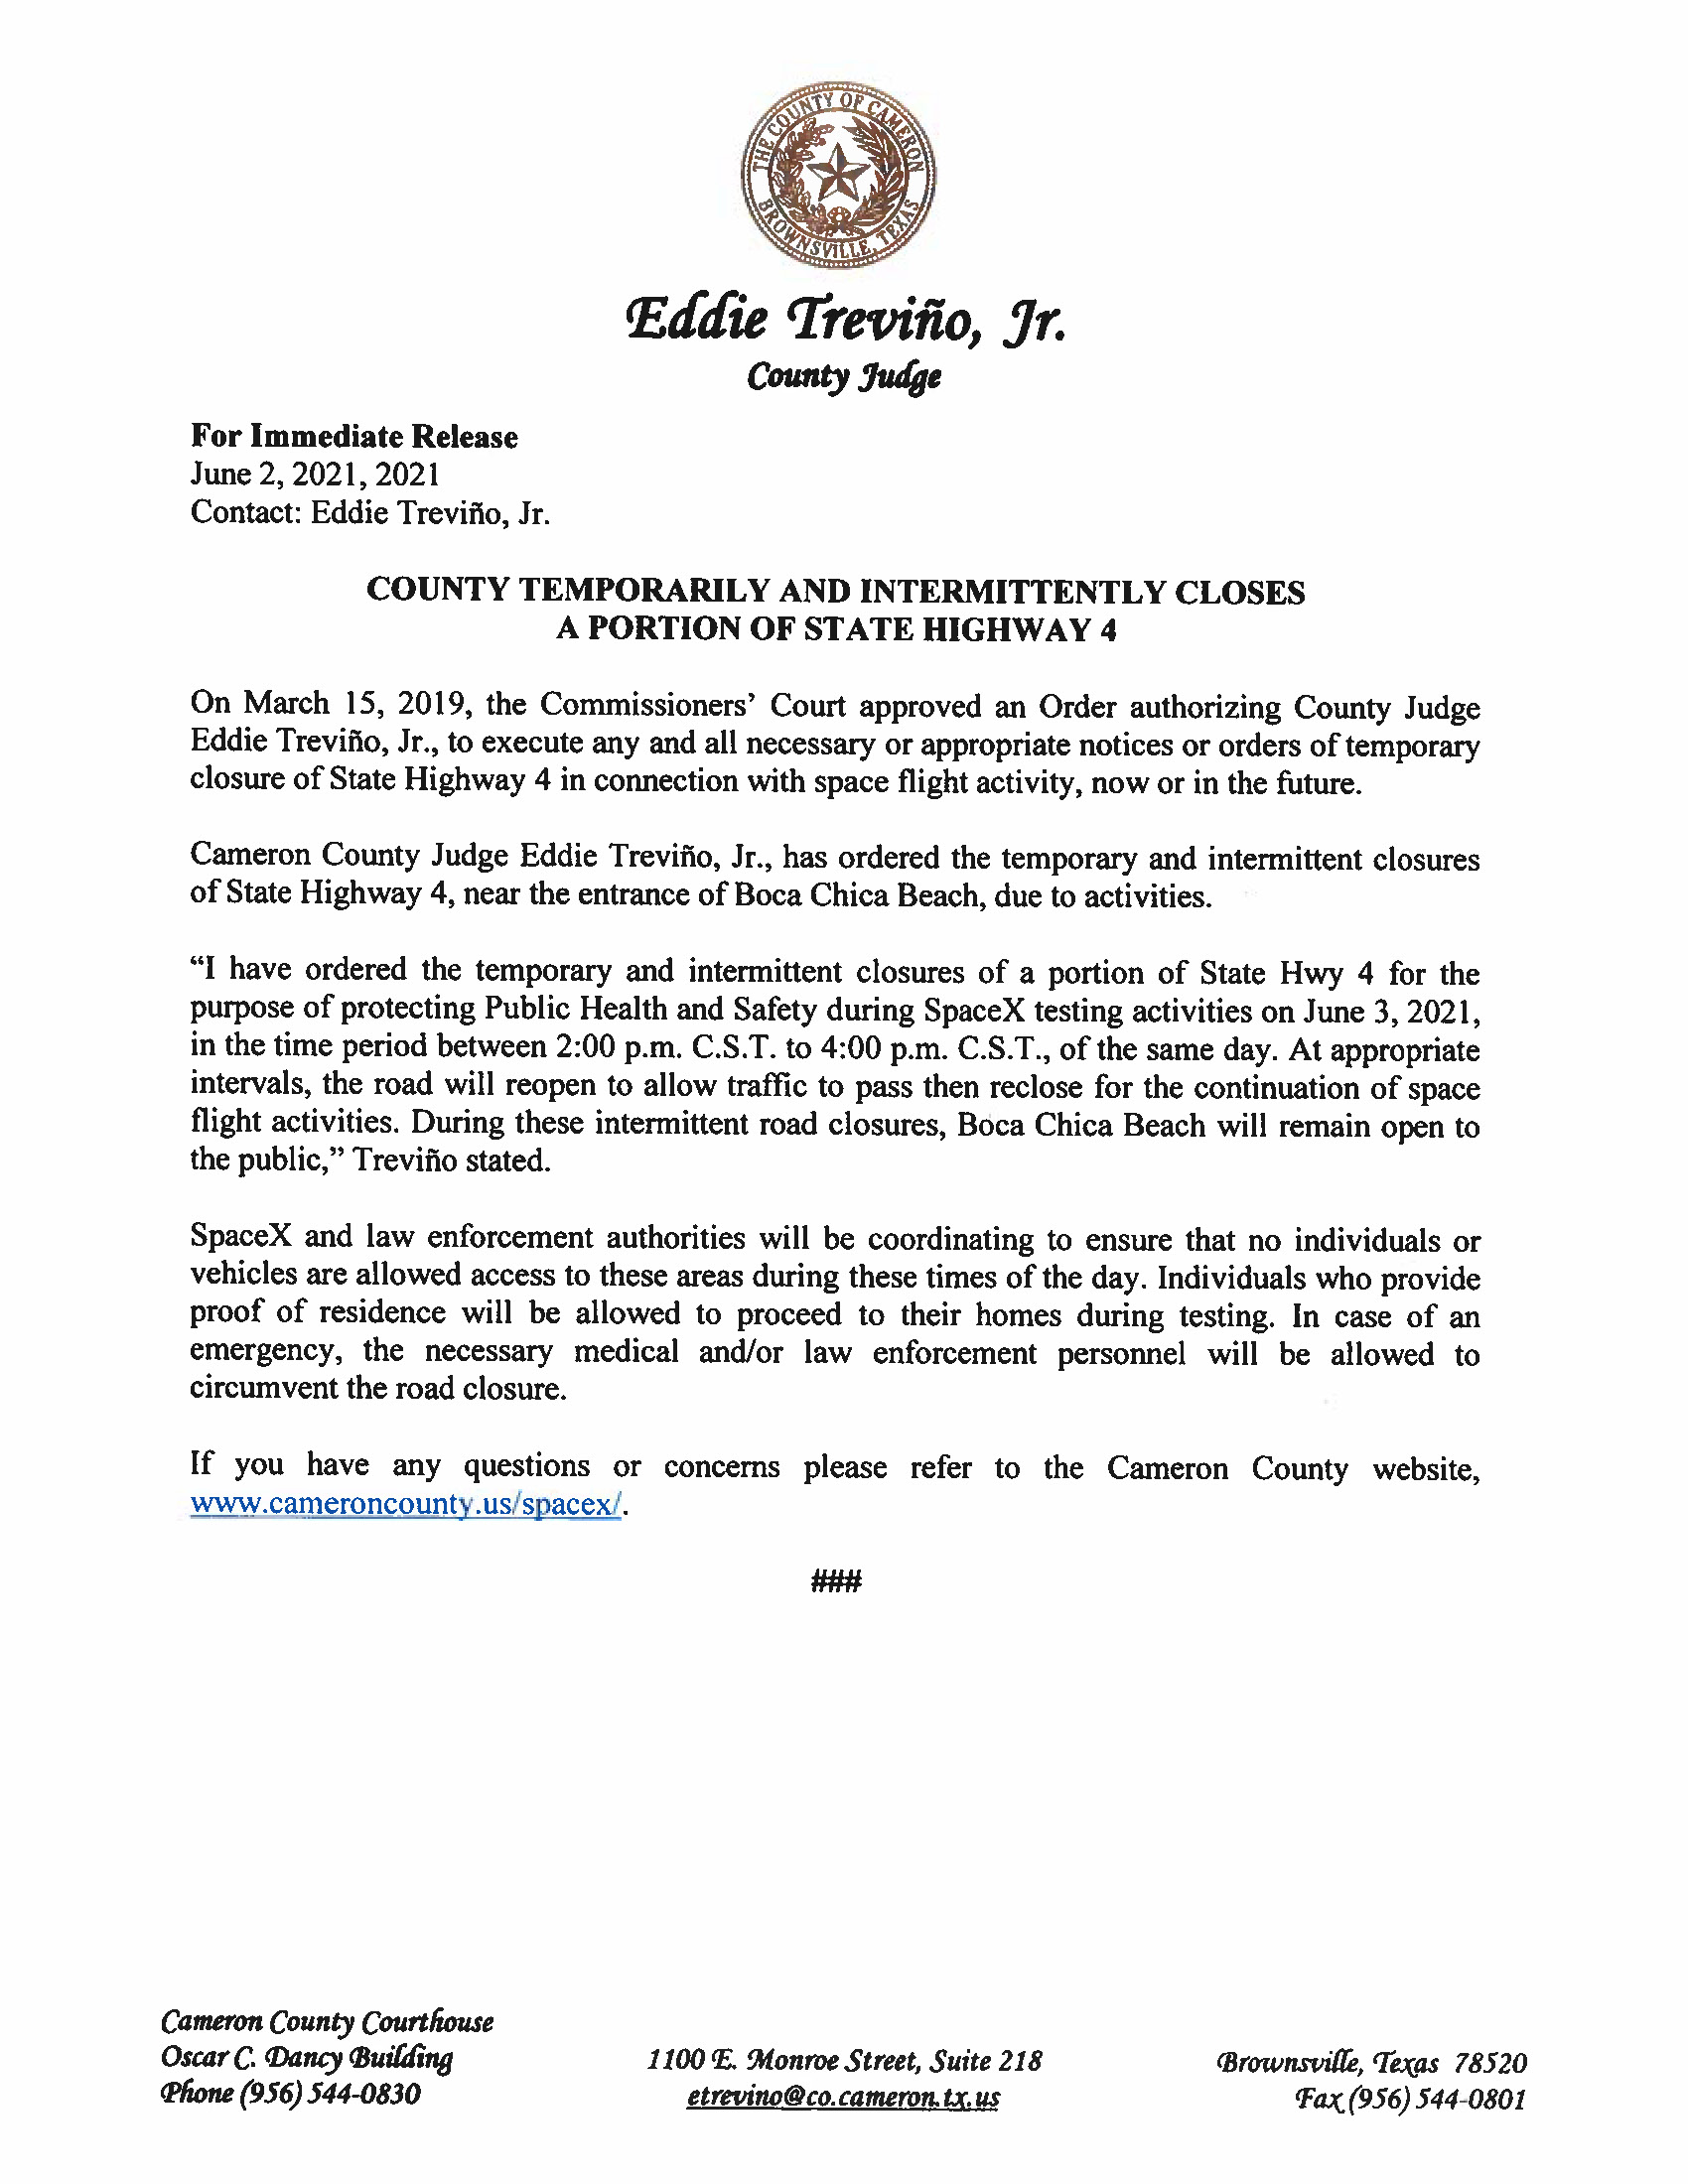 Press Release On Order Related To SpaceX Flight.ROAD CLOSURE. 06.03.2021.doc Page 1